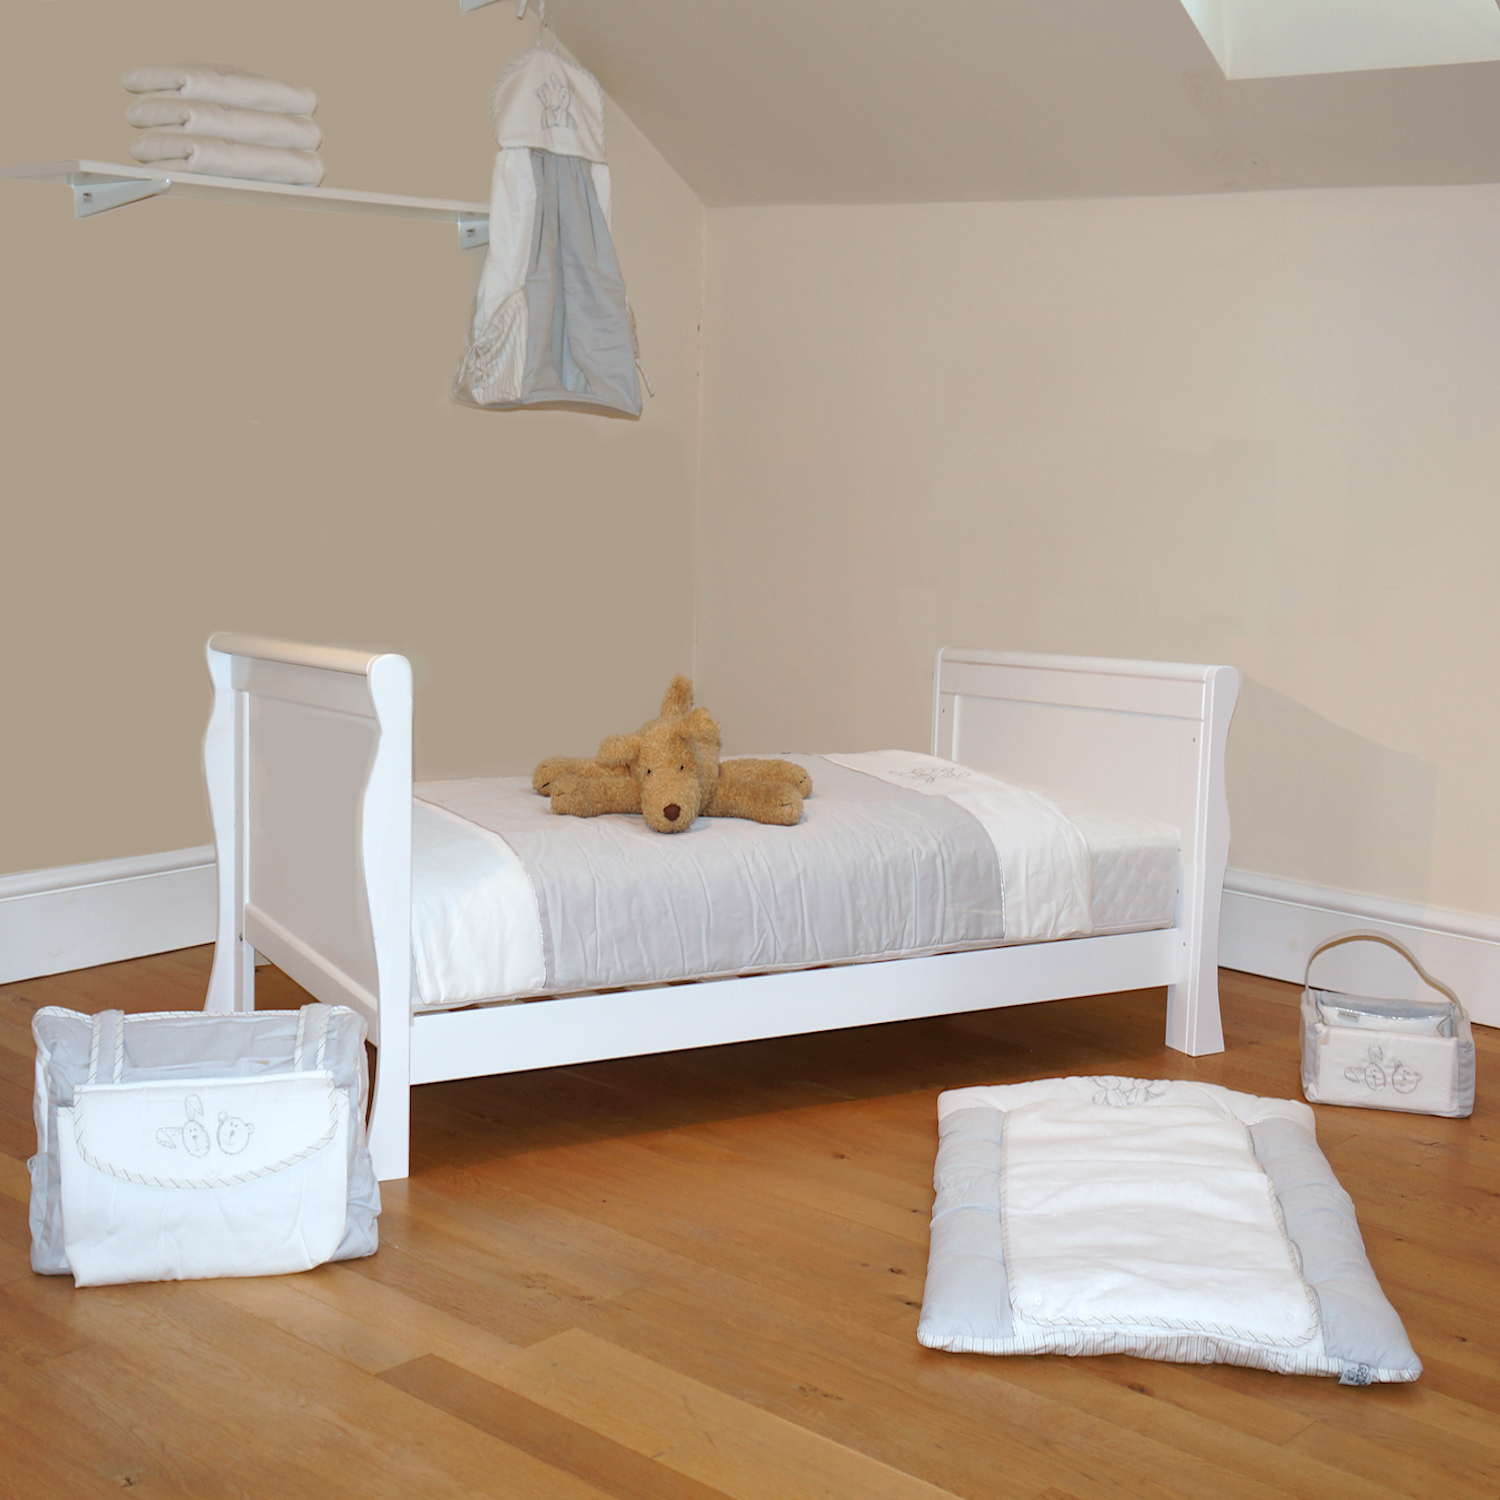 4baby 3 In 1 Sleigh Cot Bed With Deluxe Foam Mattress